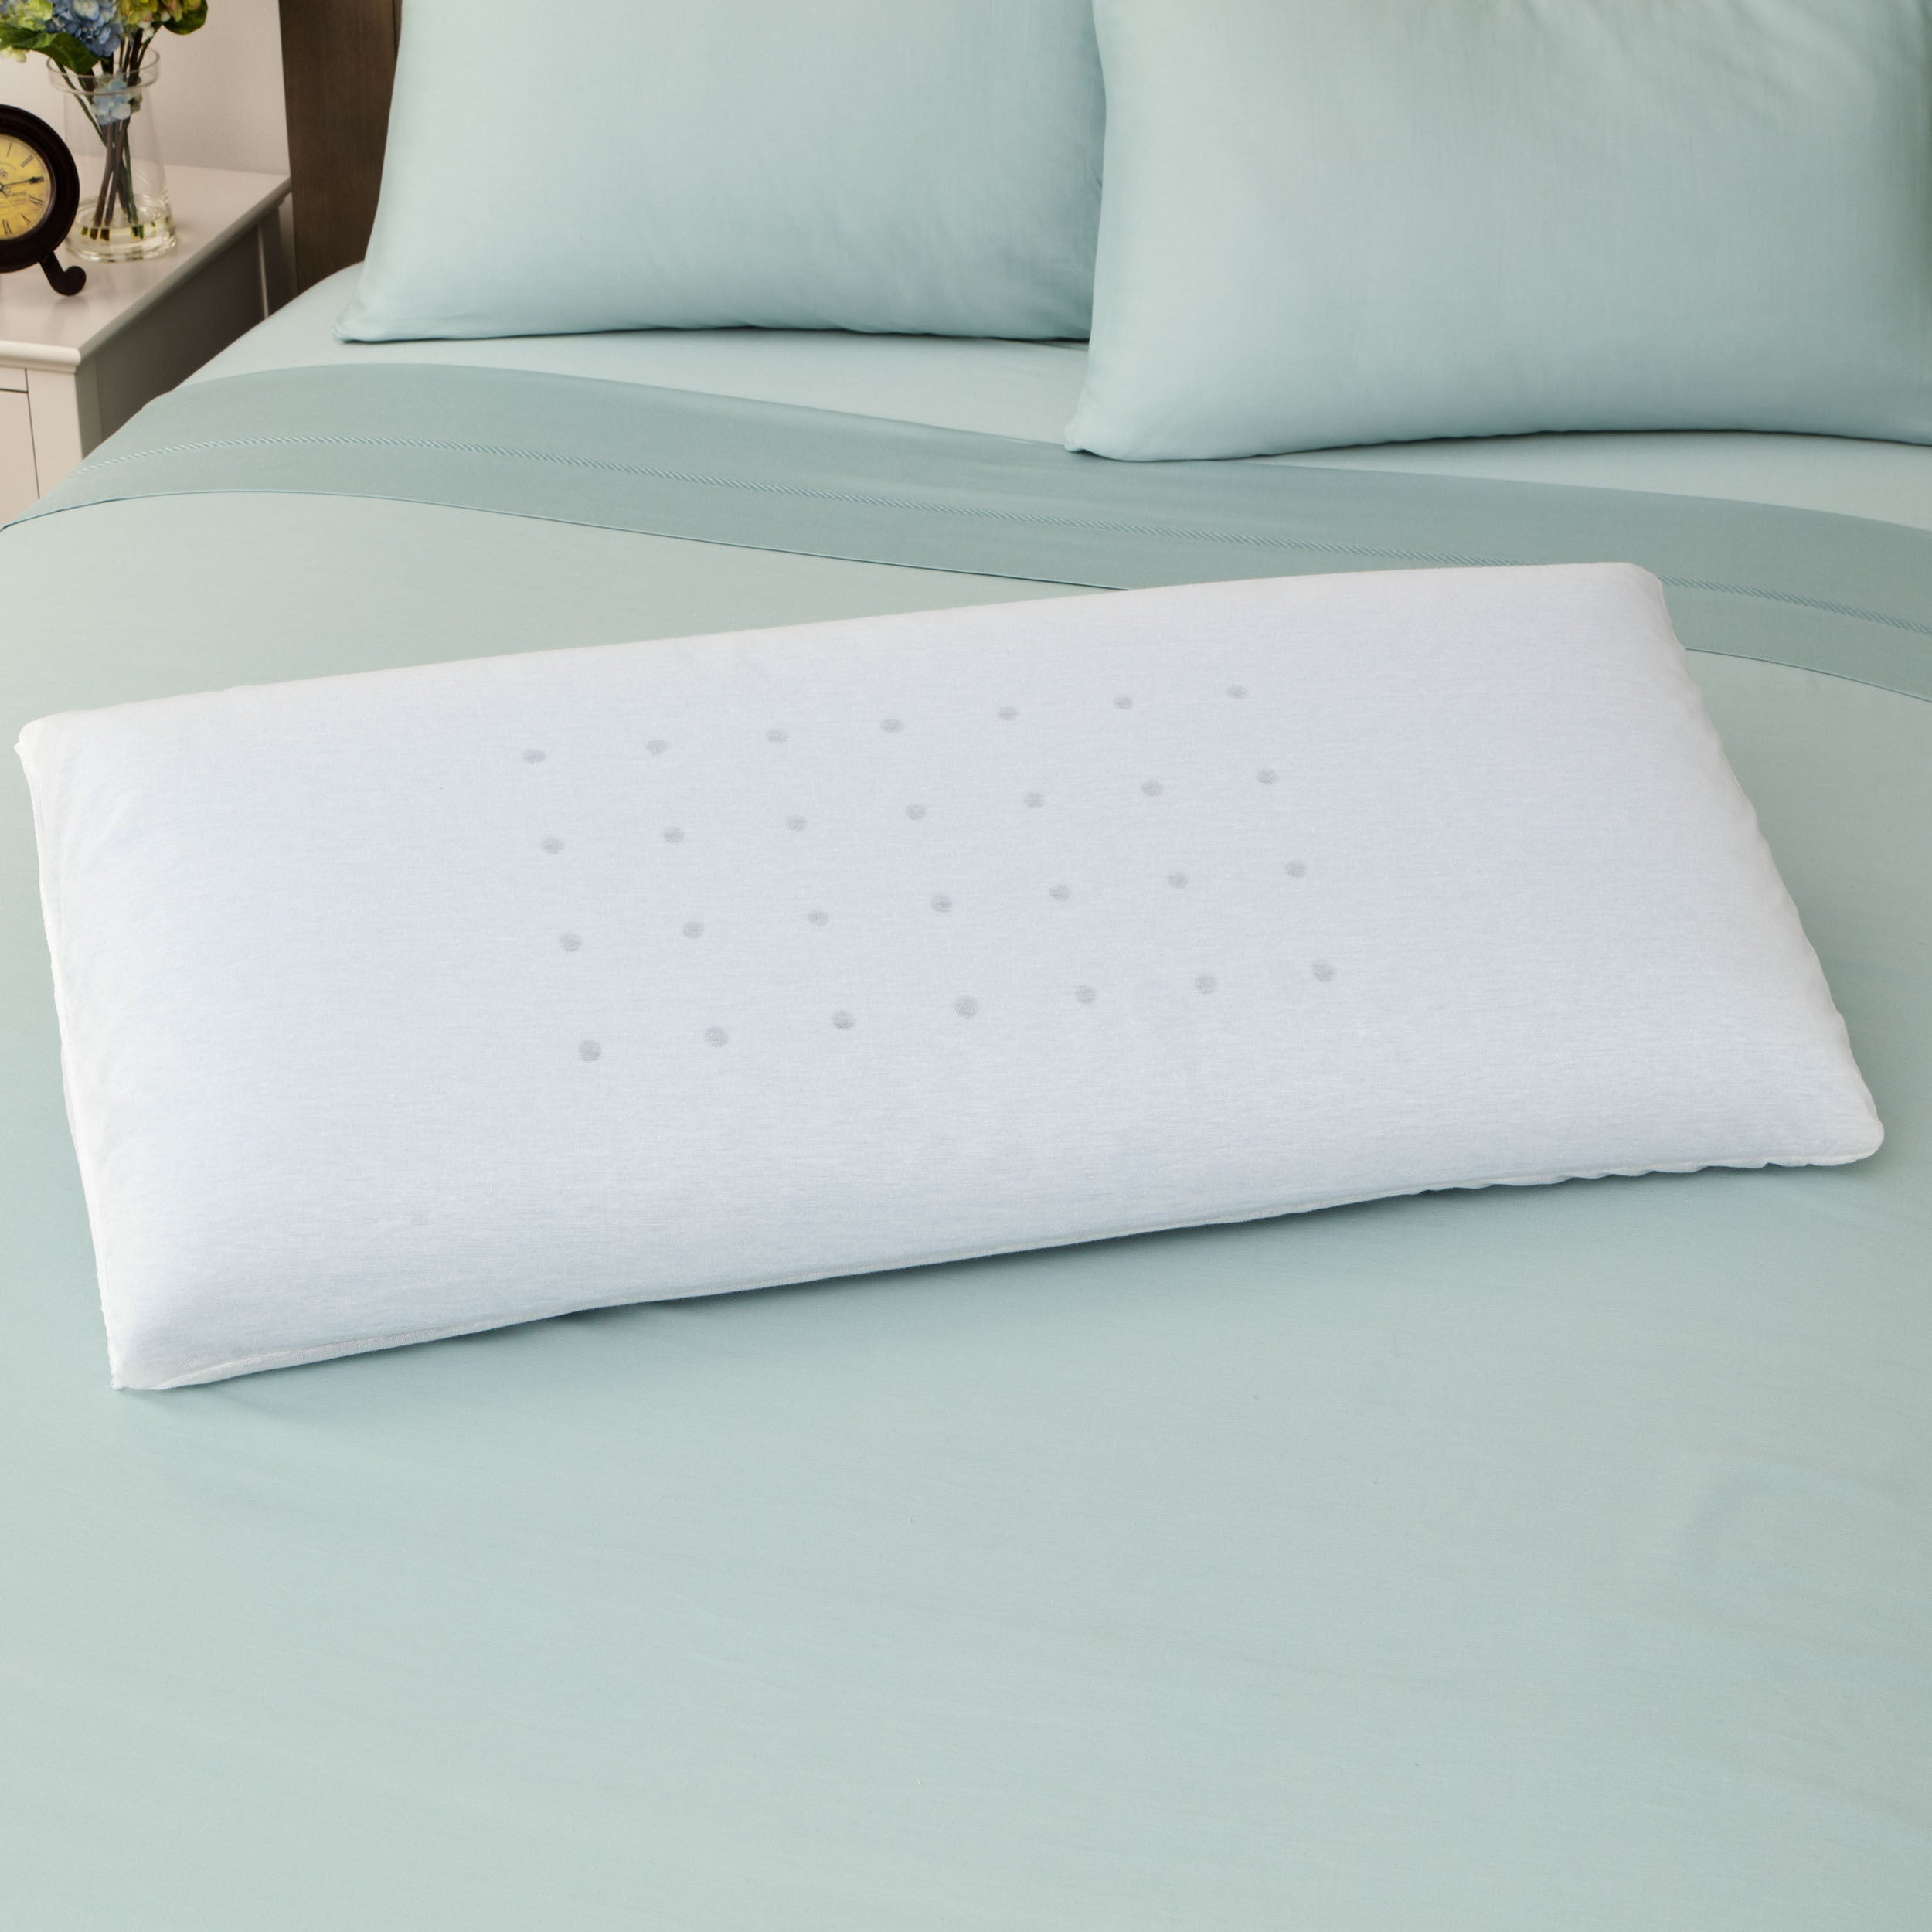 conforma pillow p size memory options bed foam pillows sleep king